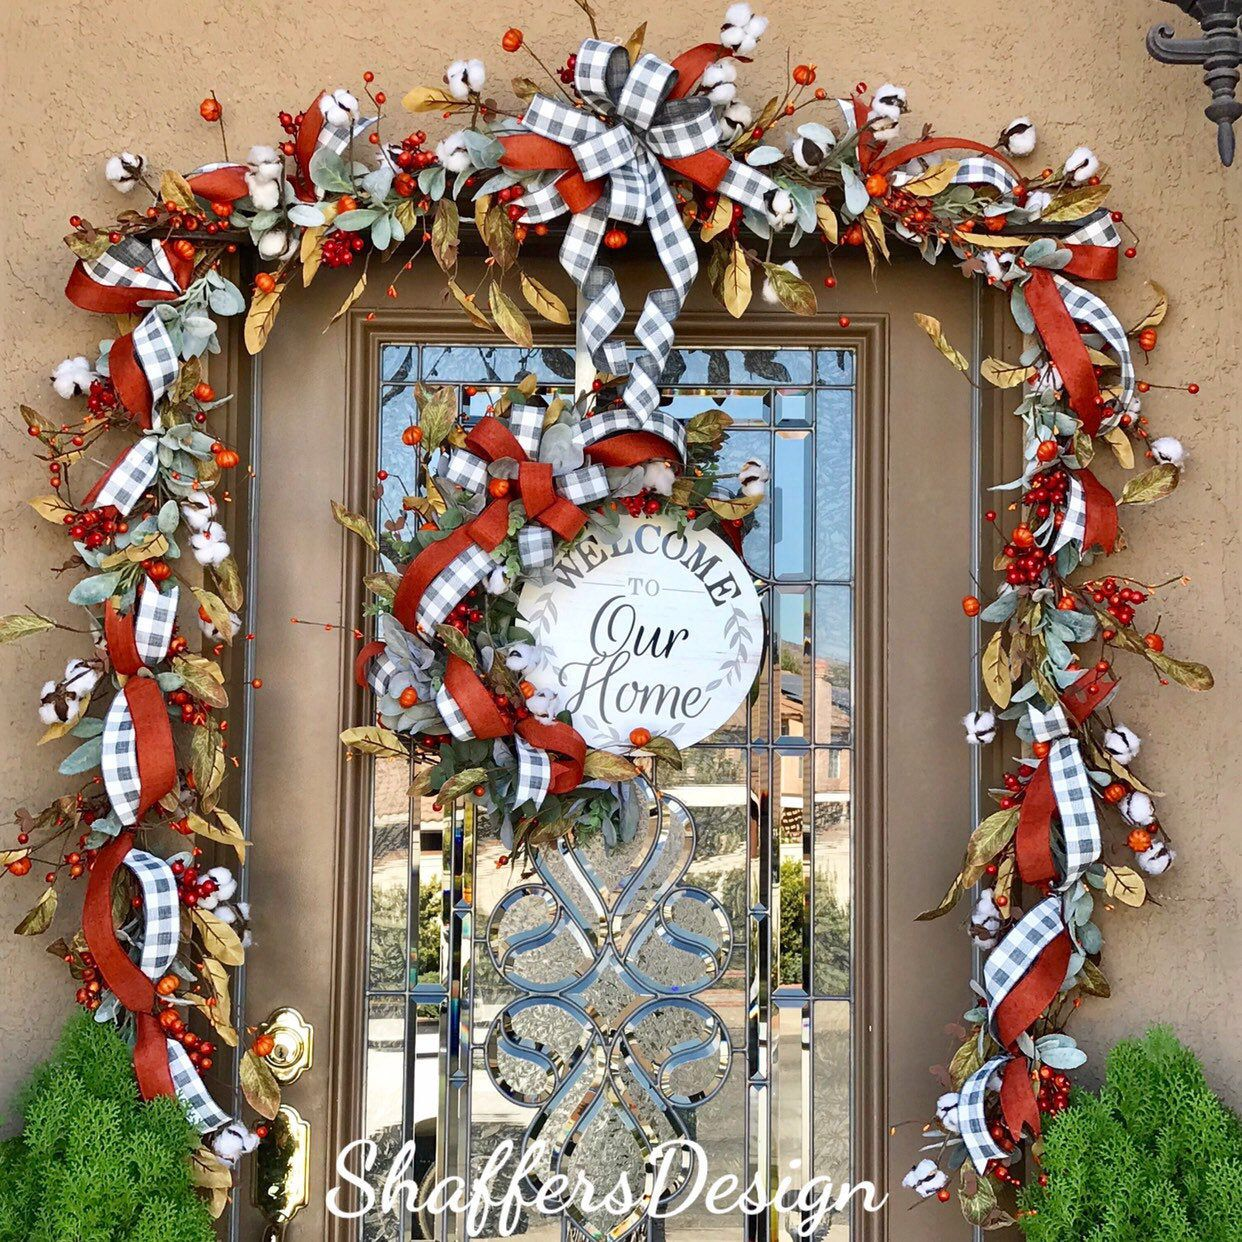 Fall Farmhouse Door Garland And Wreath Fall Cotton Boll Wreath Set Buffalo Check Door Decor Rustic Front Door Decor Harvest Door Garland Rustic Front Door Decor Fall Door Decorations Fall Door